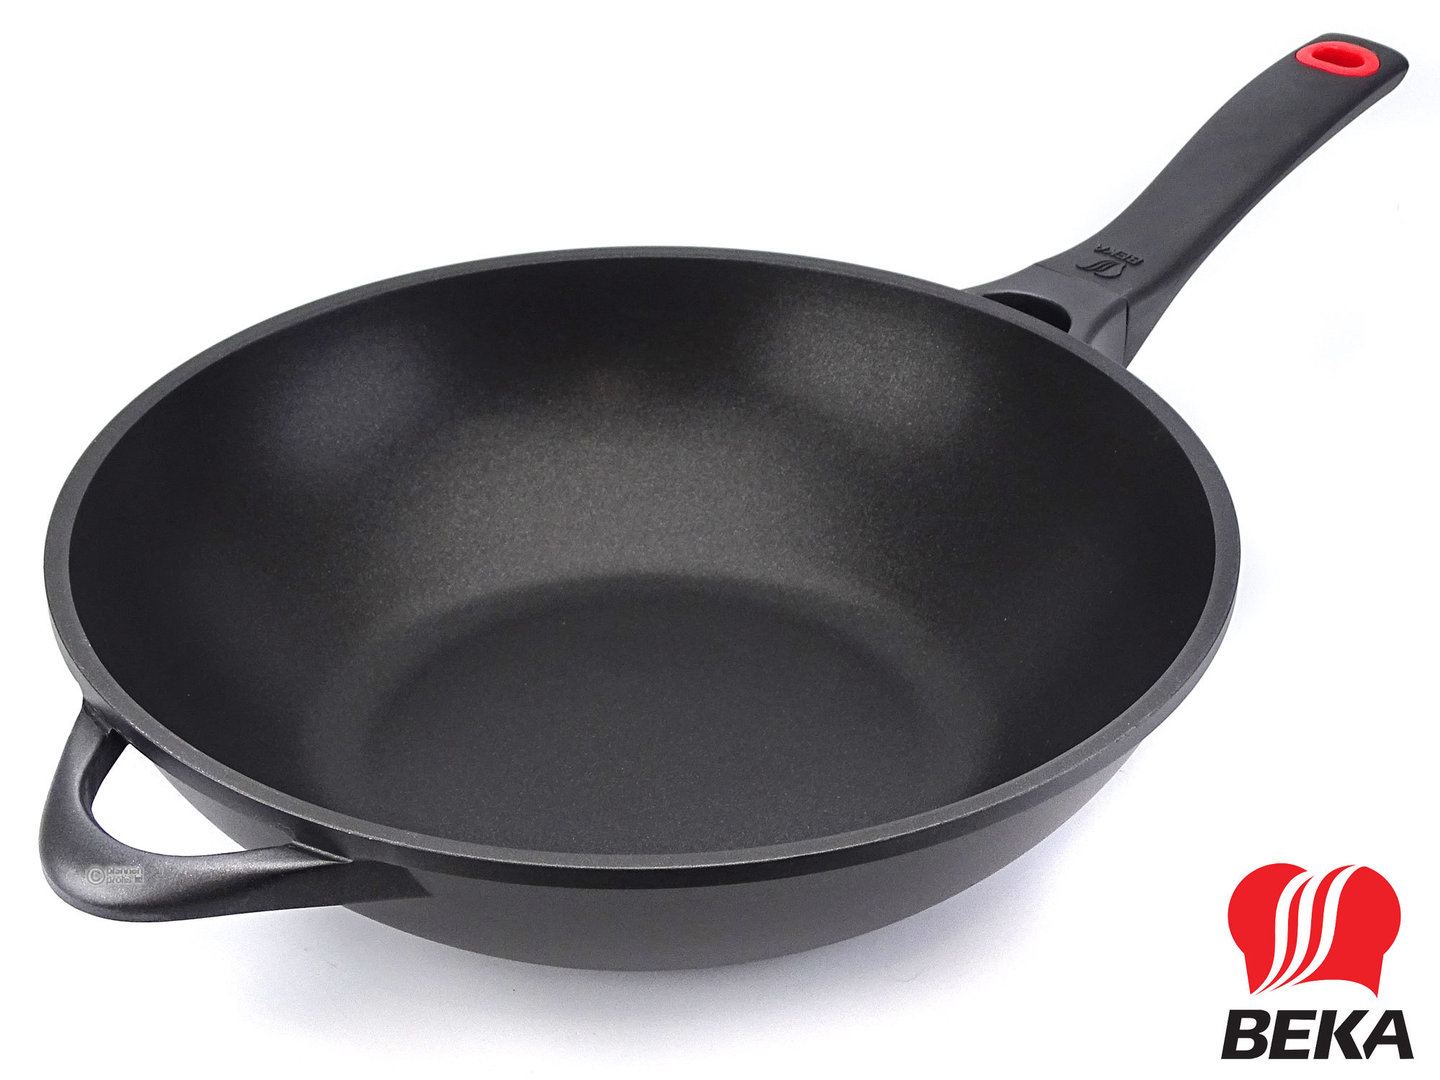 BEKA cast aluminum wok pan ENERGY 30 cm non-stick induction